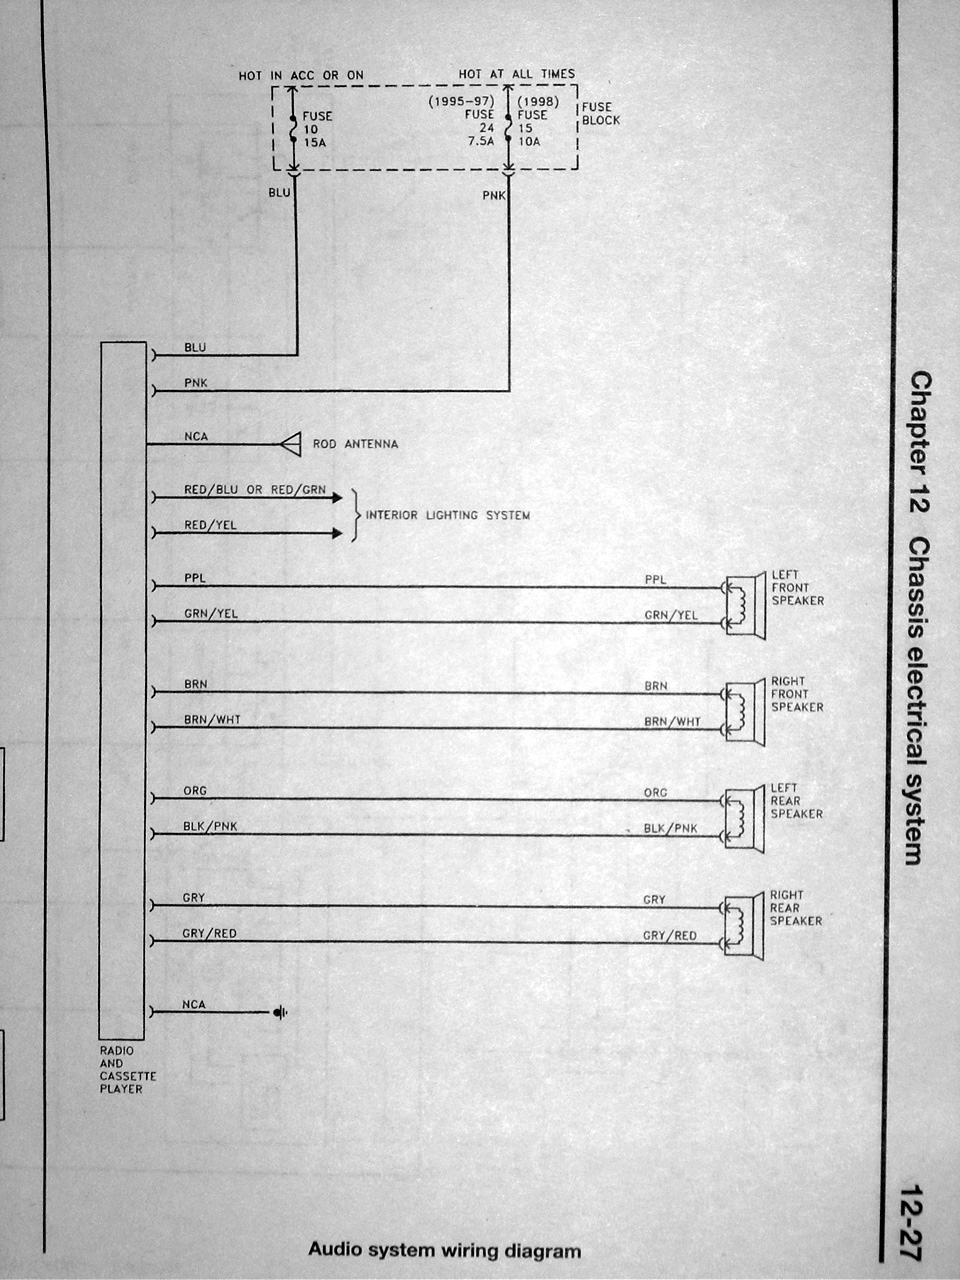 wiring diagram th useful info nissan forum b14